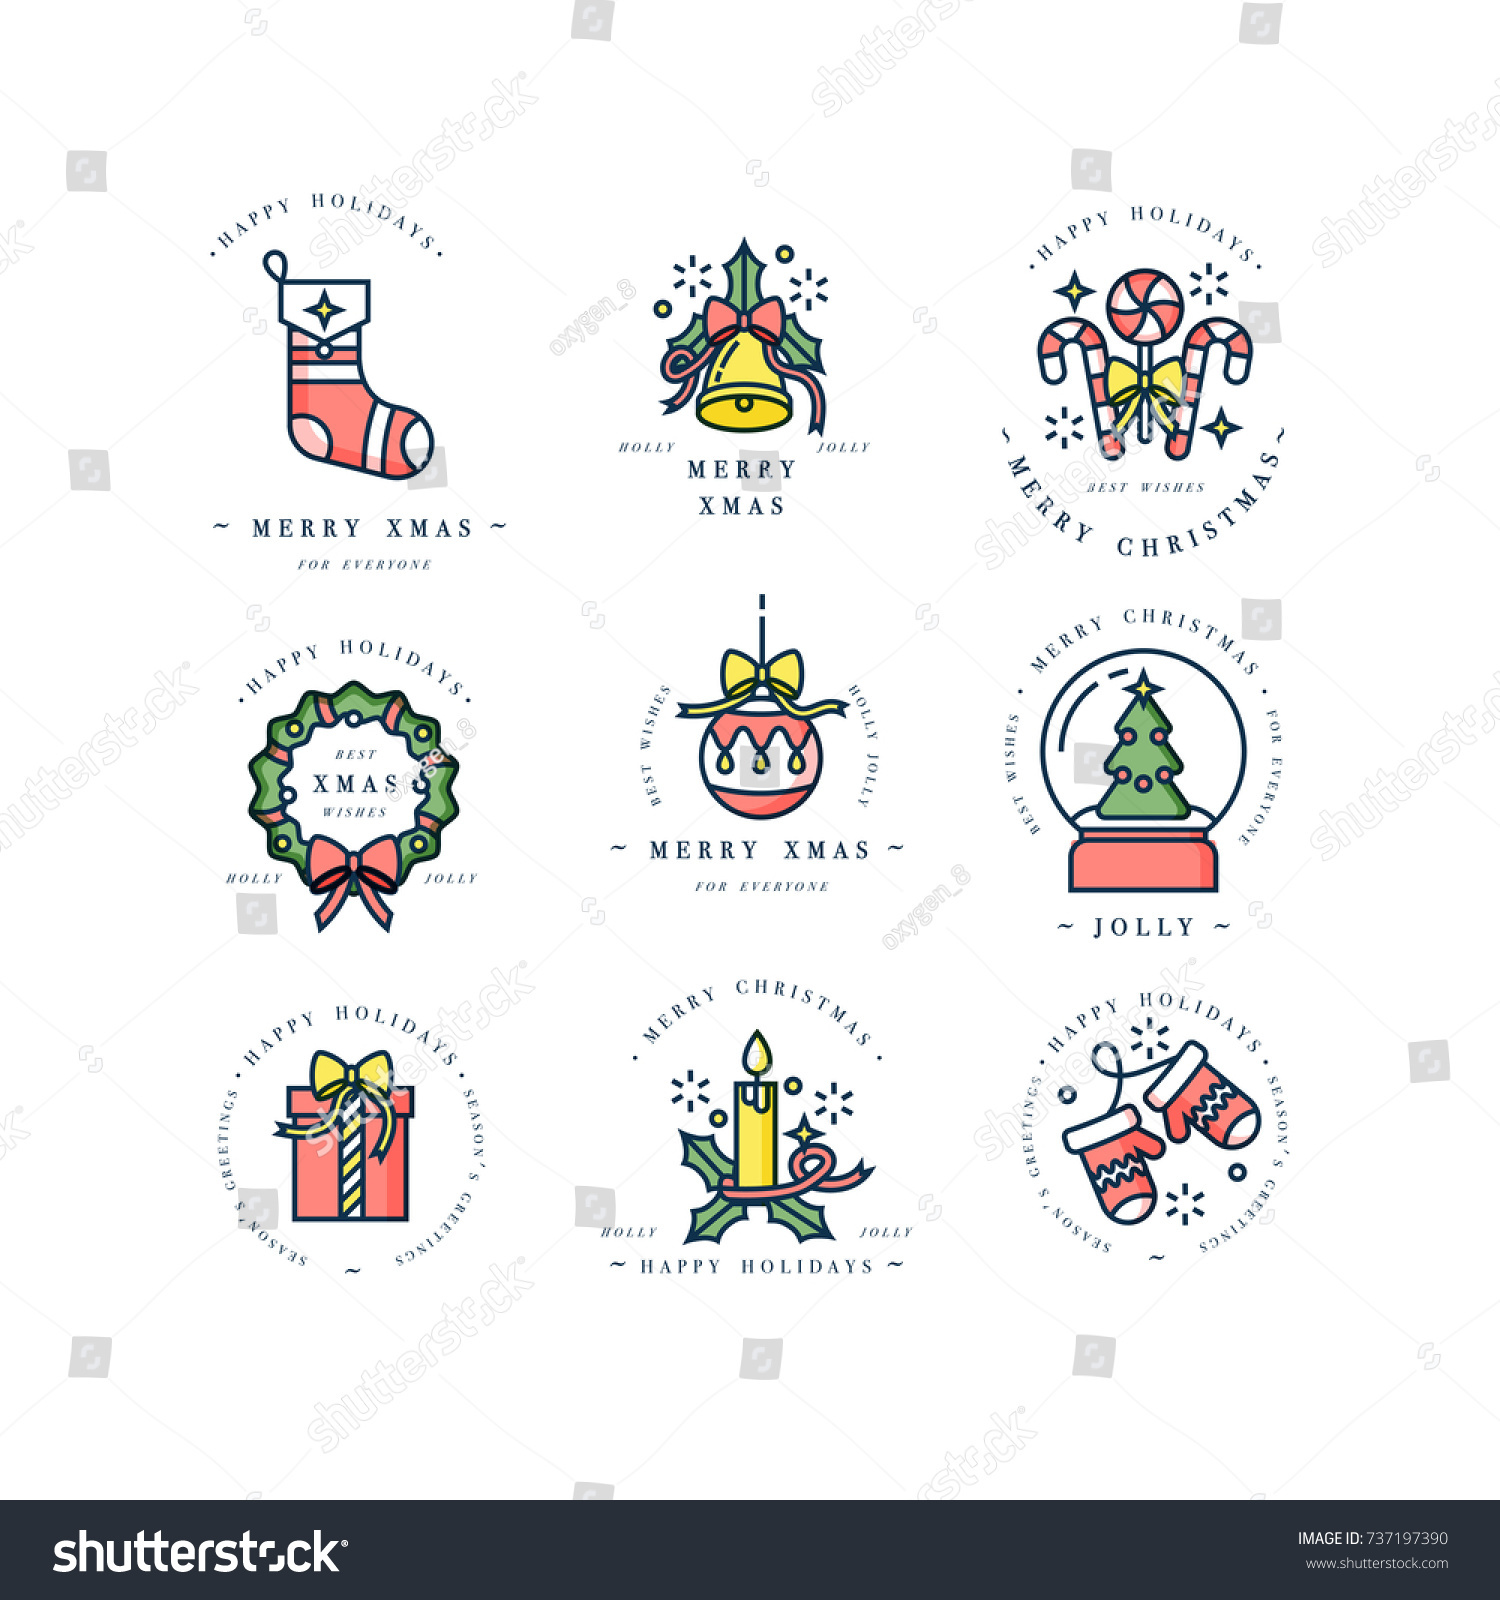 Vector Linear Design Christmas Greetings Elements Stock Vector ...